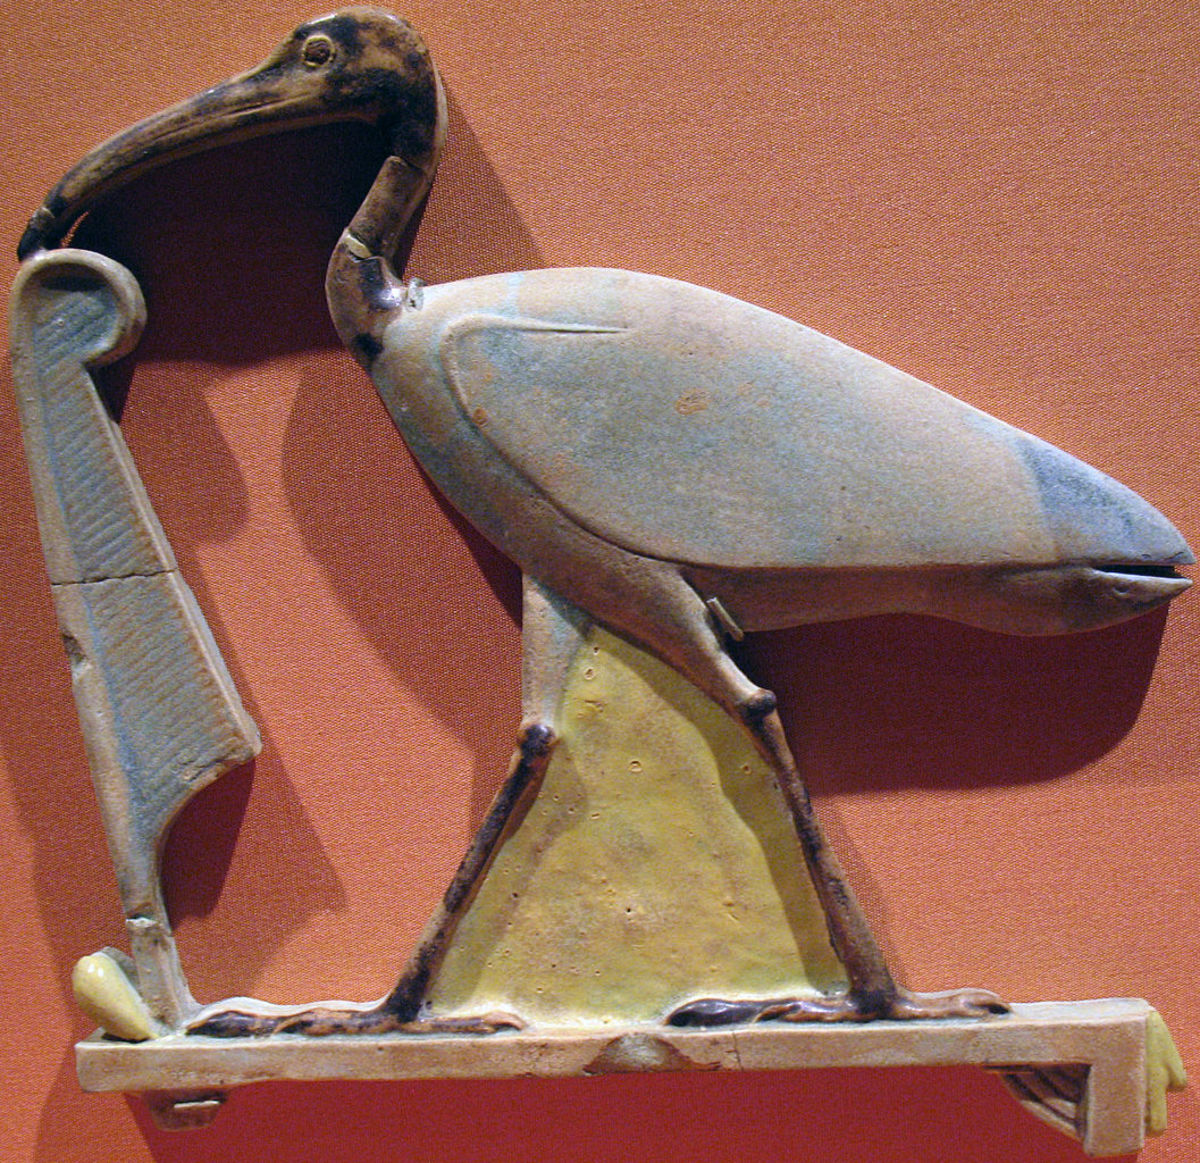 A beautiful amulet with Thoth's name, the ibis hieroglyph, next to Ma'at, the Feather of Truth.